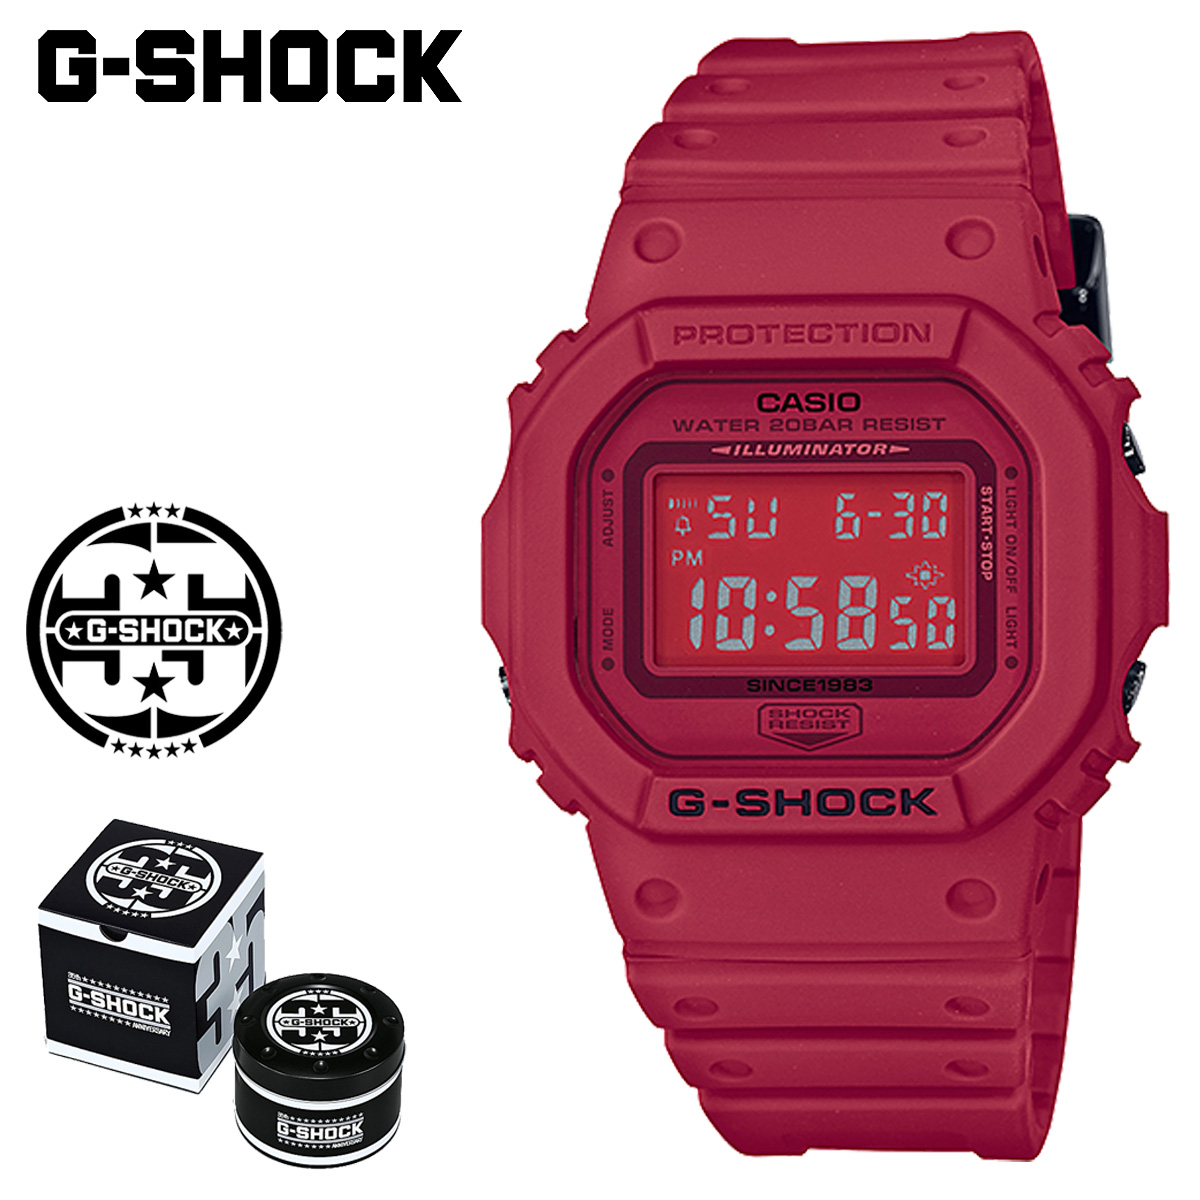 huge discount b85d2 22955 G shock G-Shock G- shock red red men gap Dis of the 35th ...